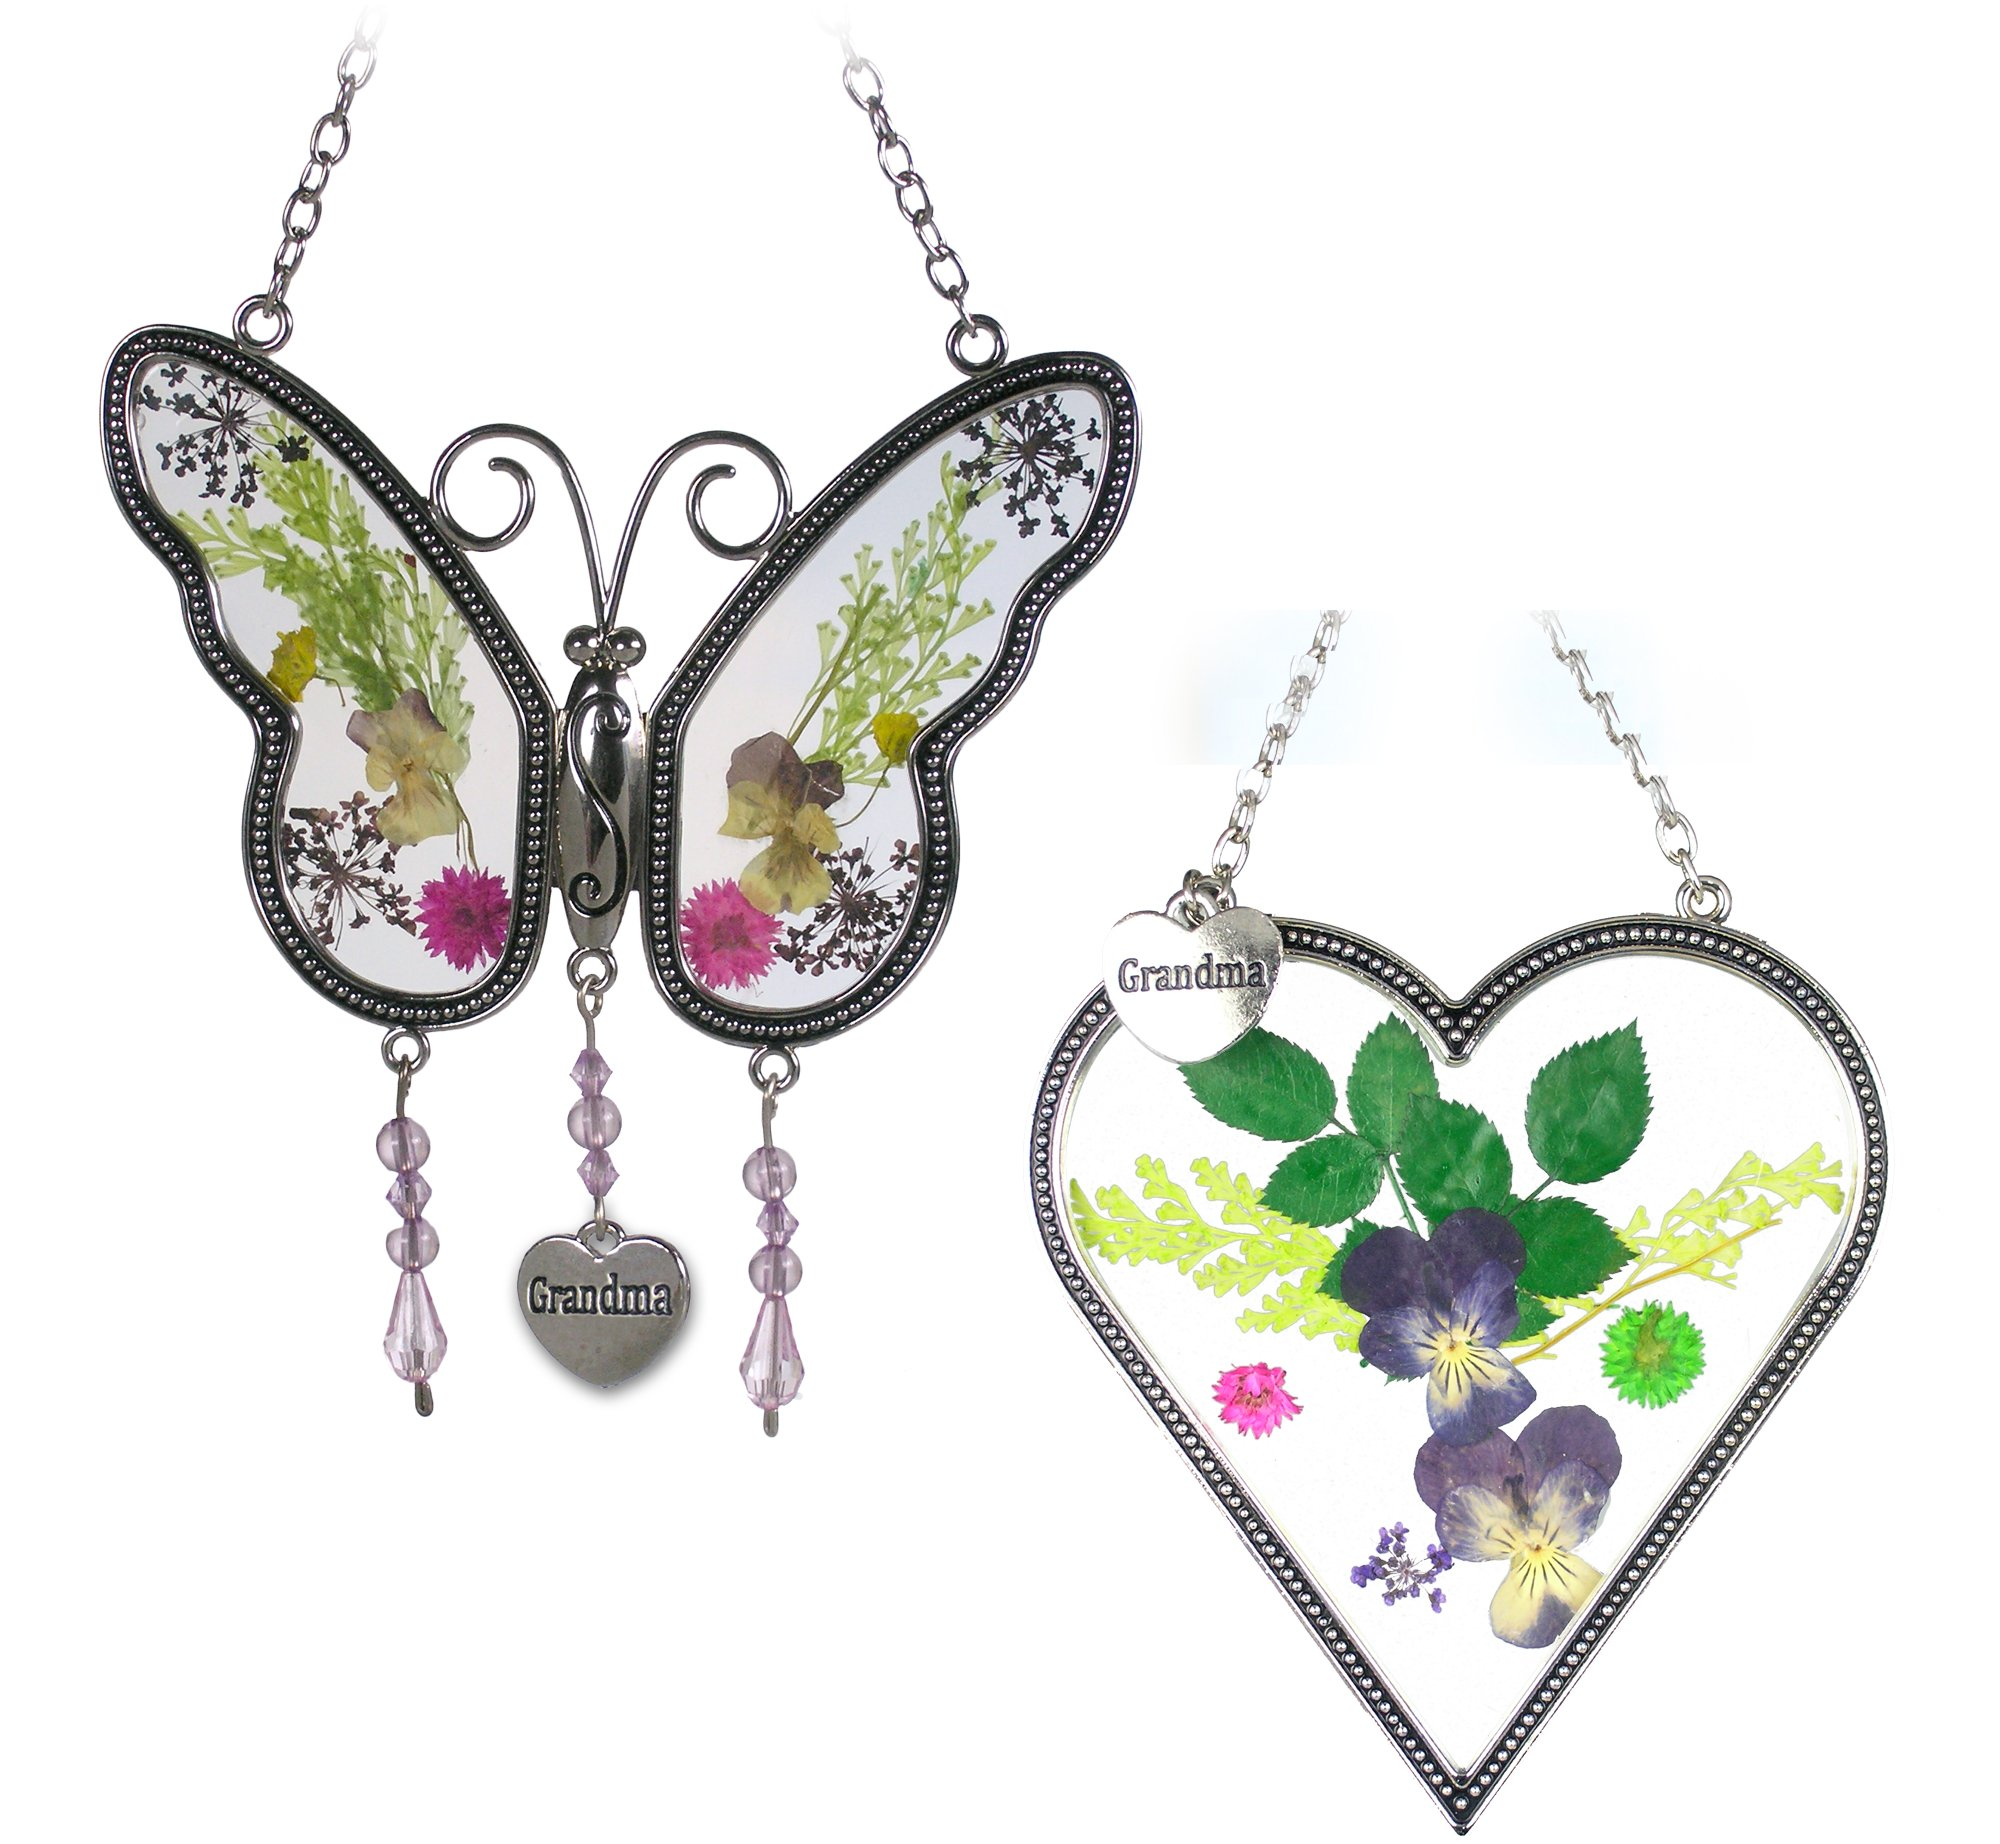 BANBERRY DESIGNS Grandma Gifts - Grandma Butterfly - Heart Sun Catcher with Grandmother Charm - Combo Pack of Pressed Flower Suncatchers - Gifts for Grandma